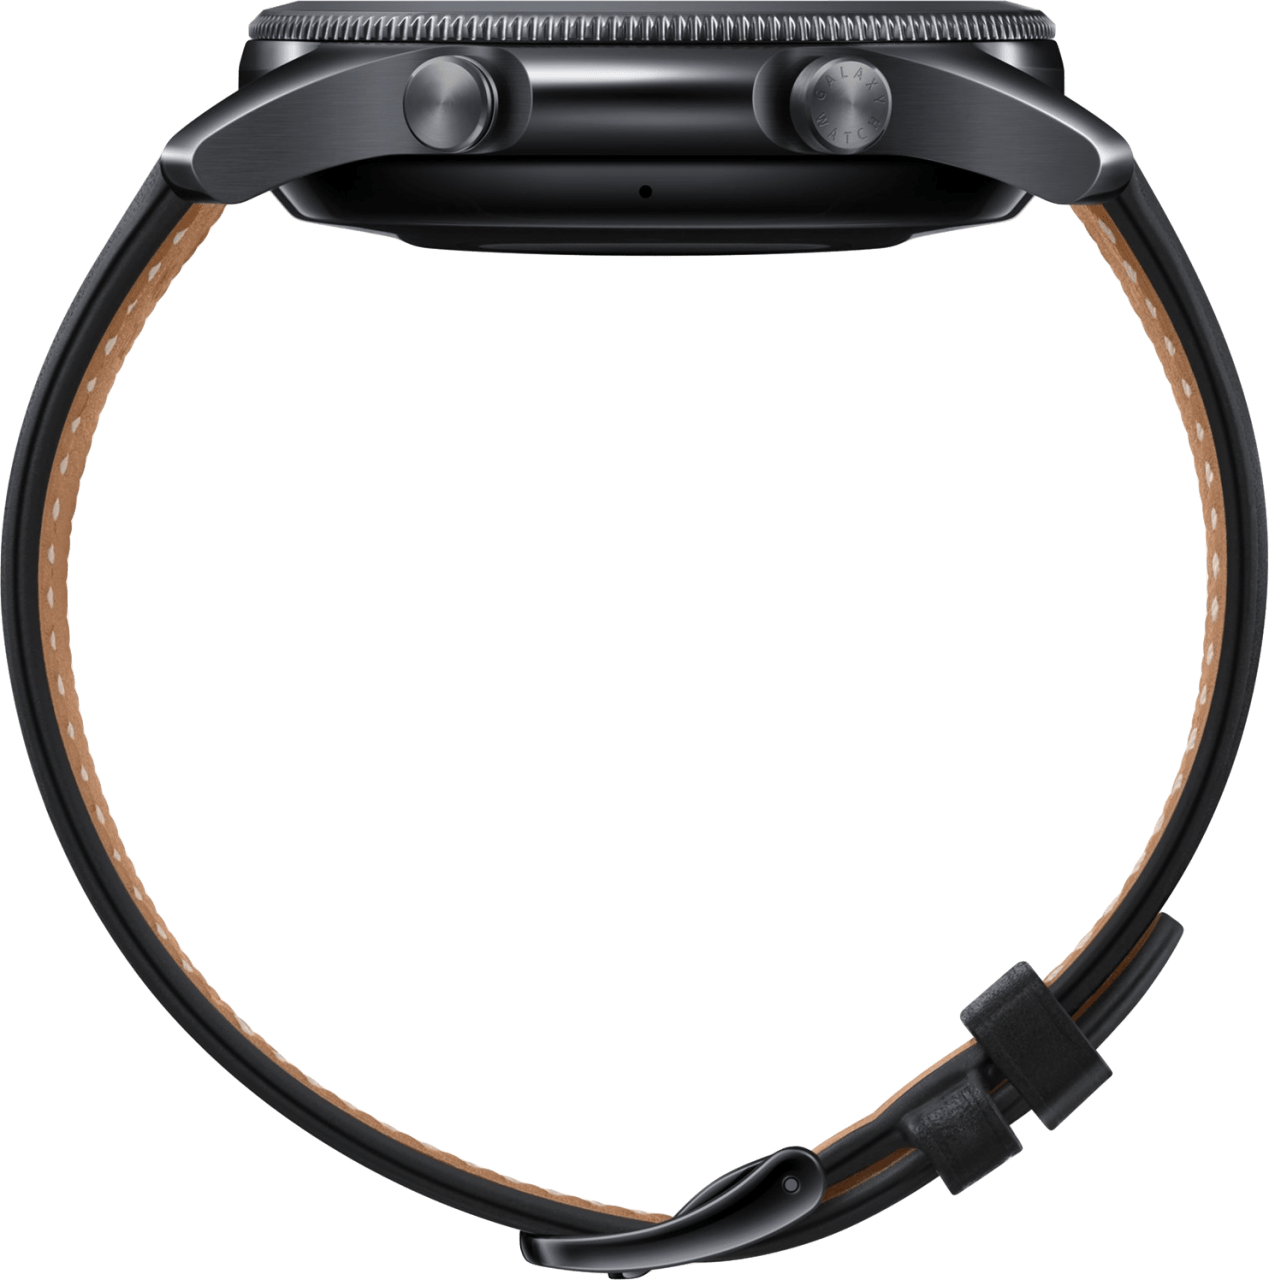 Mystic Black Samsung Galaxy Watch 3, 45mm.4